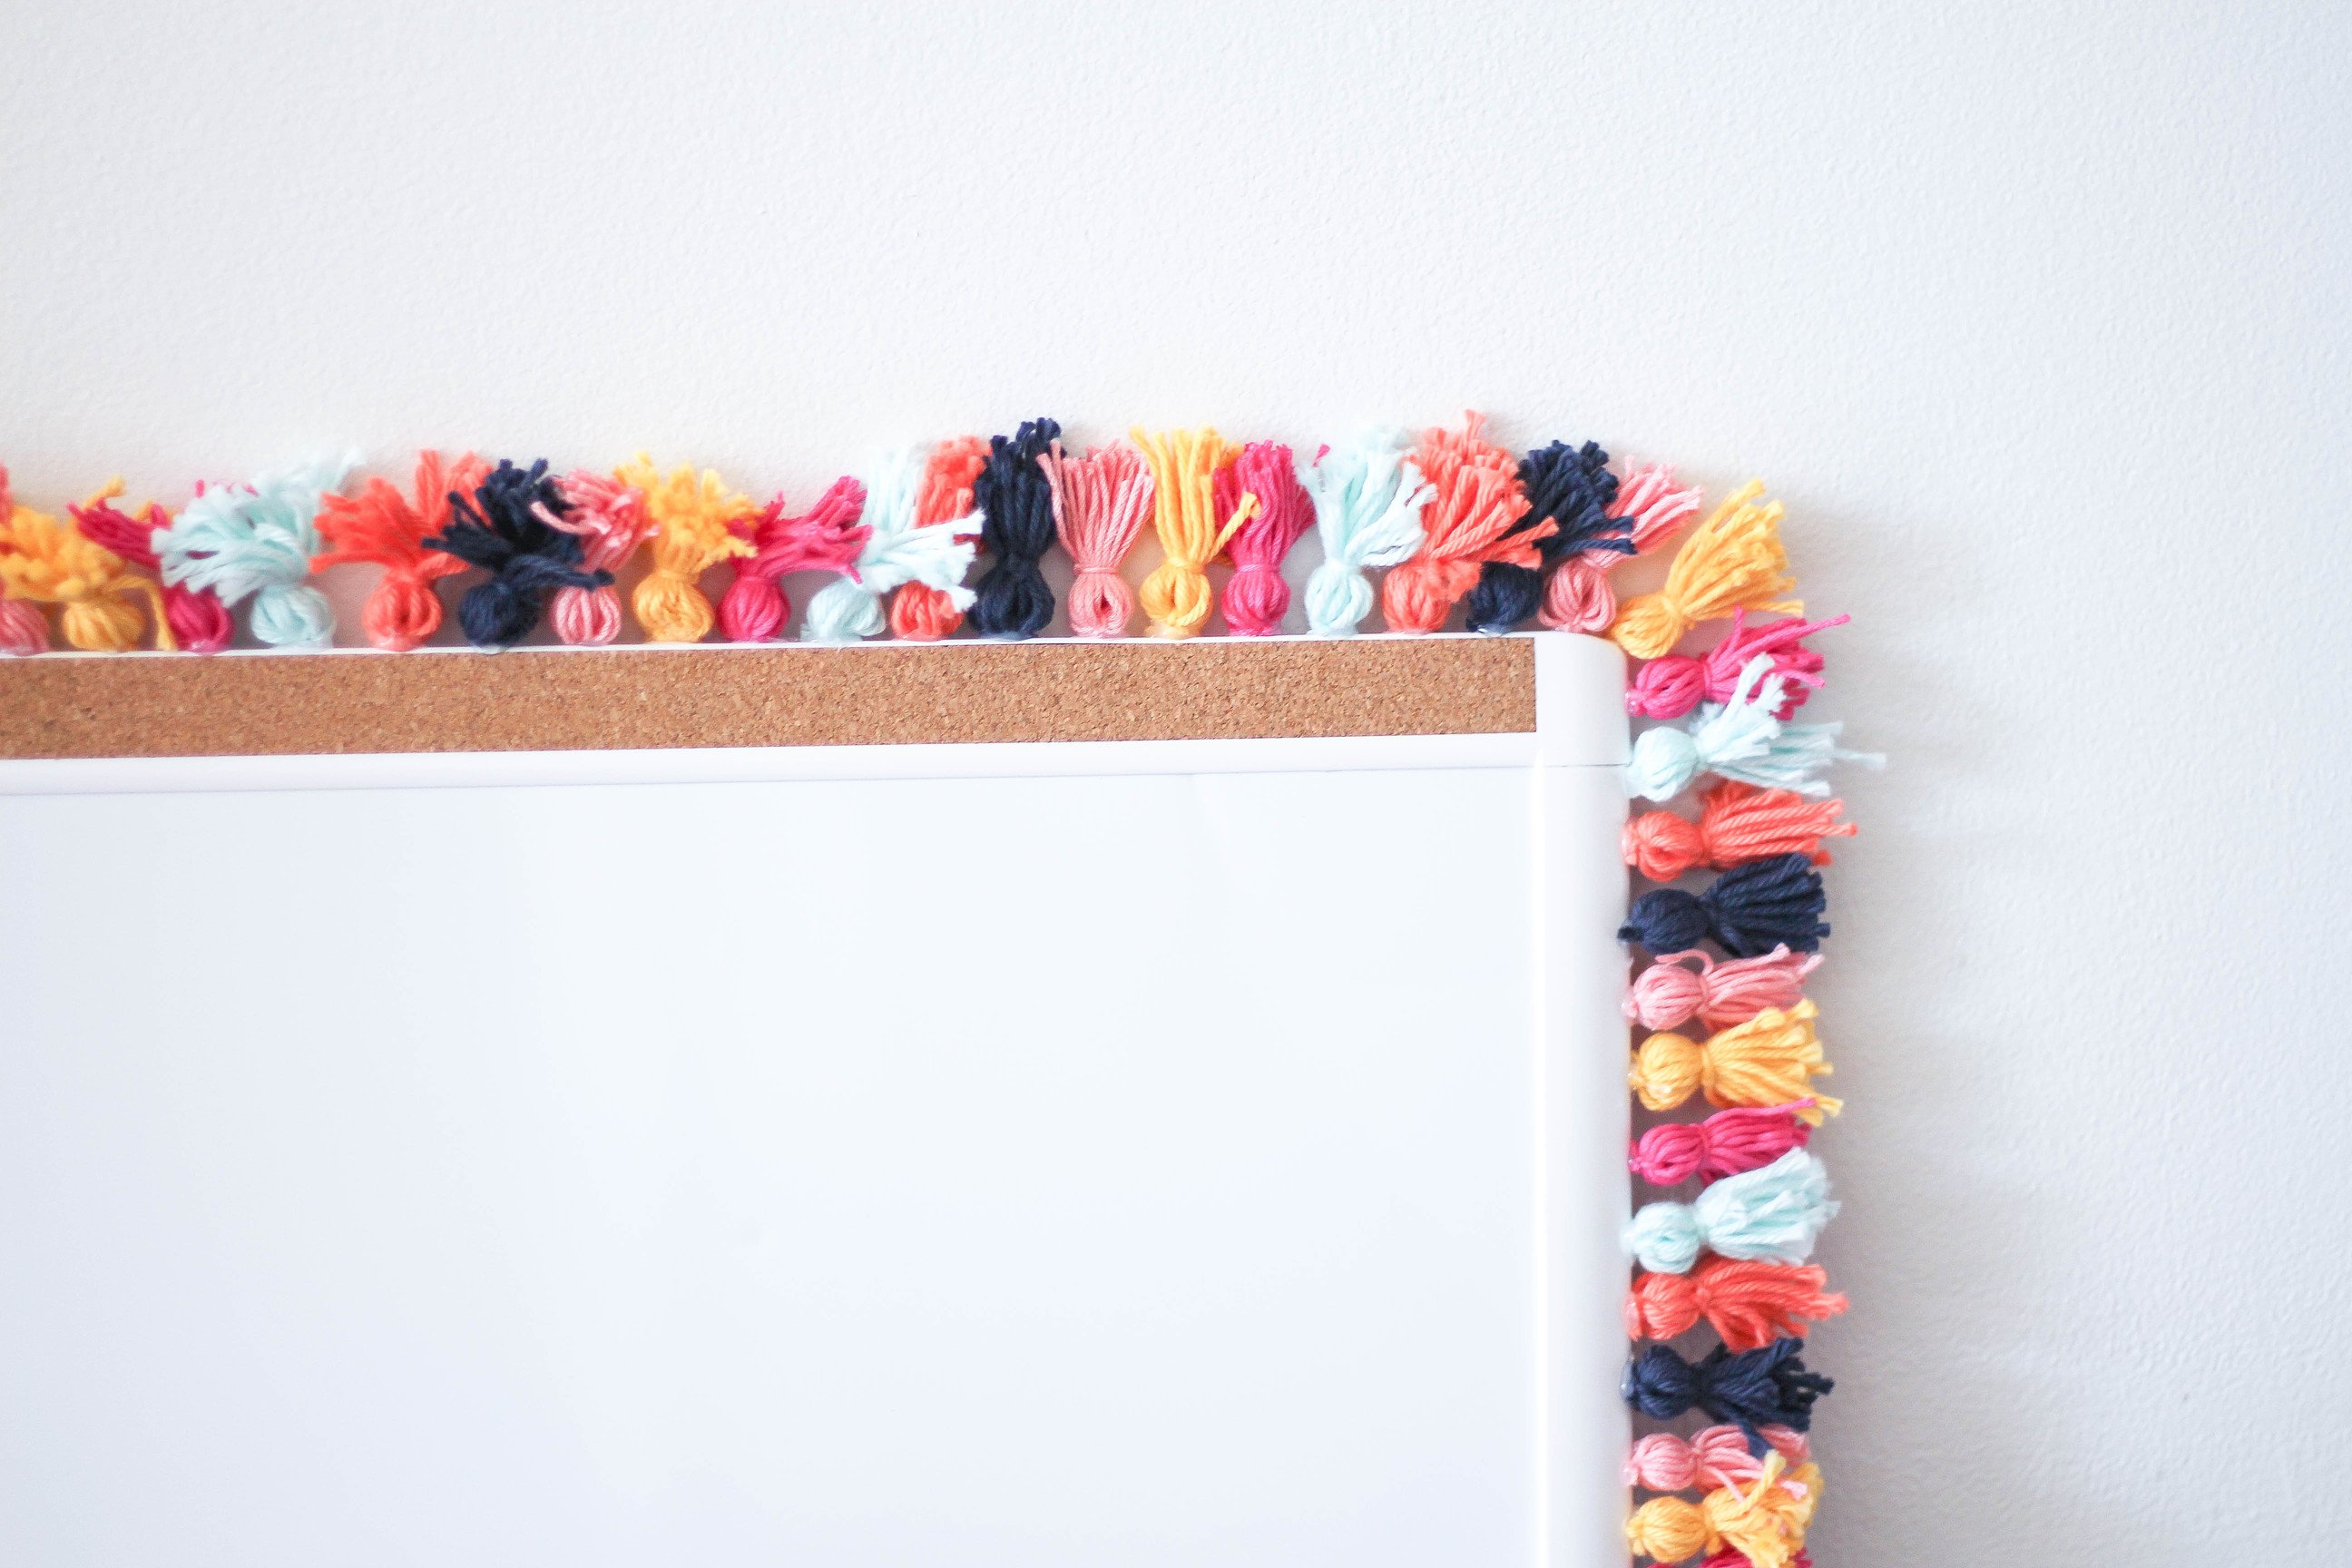 DIY Tassel decor and crafts Tassel decor for dorm room by lauren lindmark on daily dose of charm